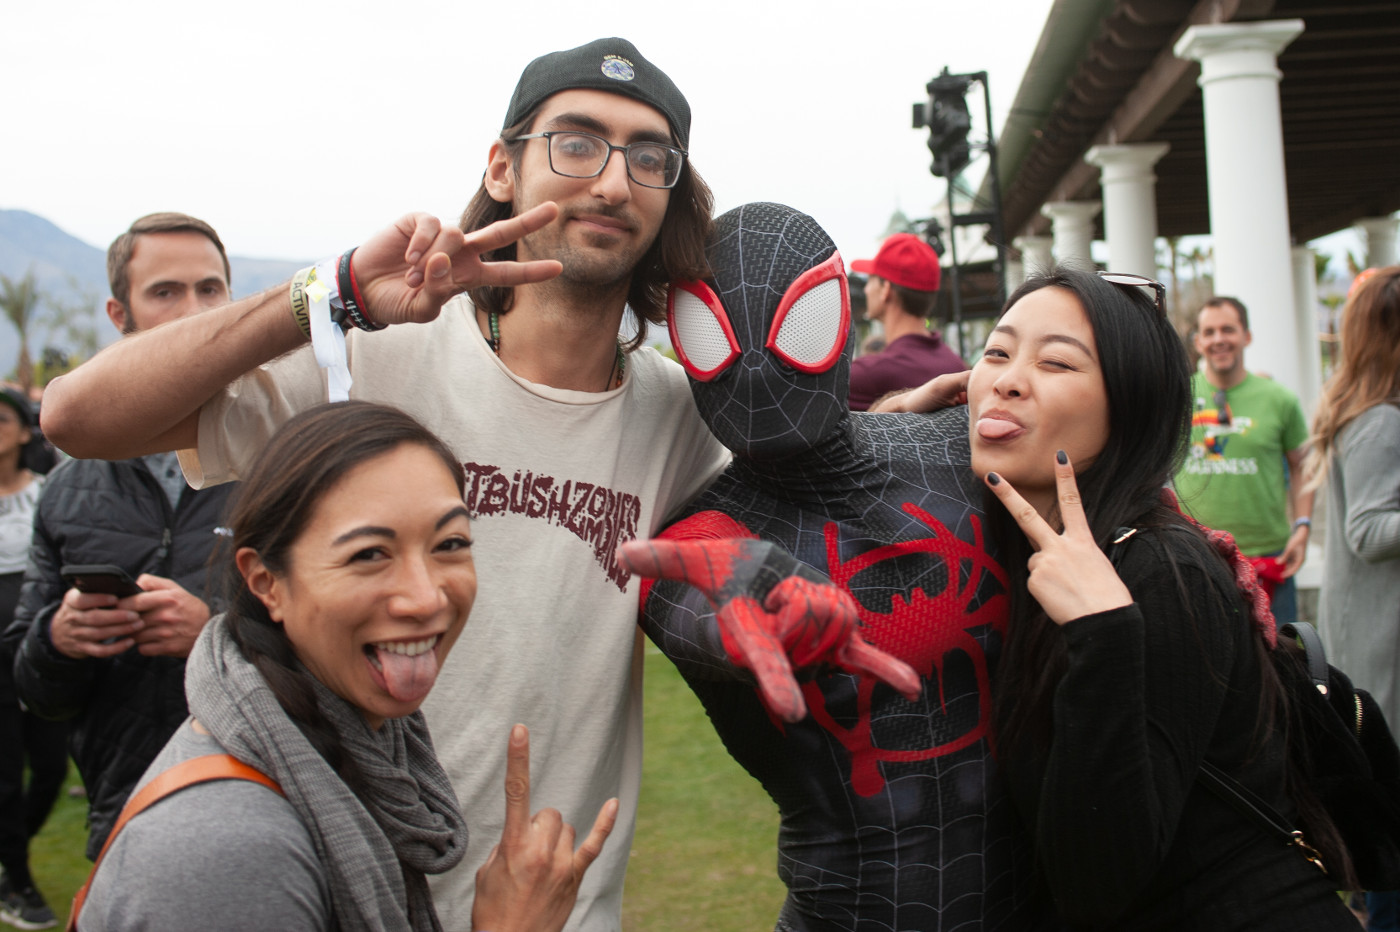 images/4xFar 2020/Spider man and friends wathcing Sofi Tukker